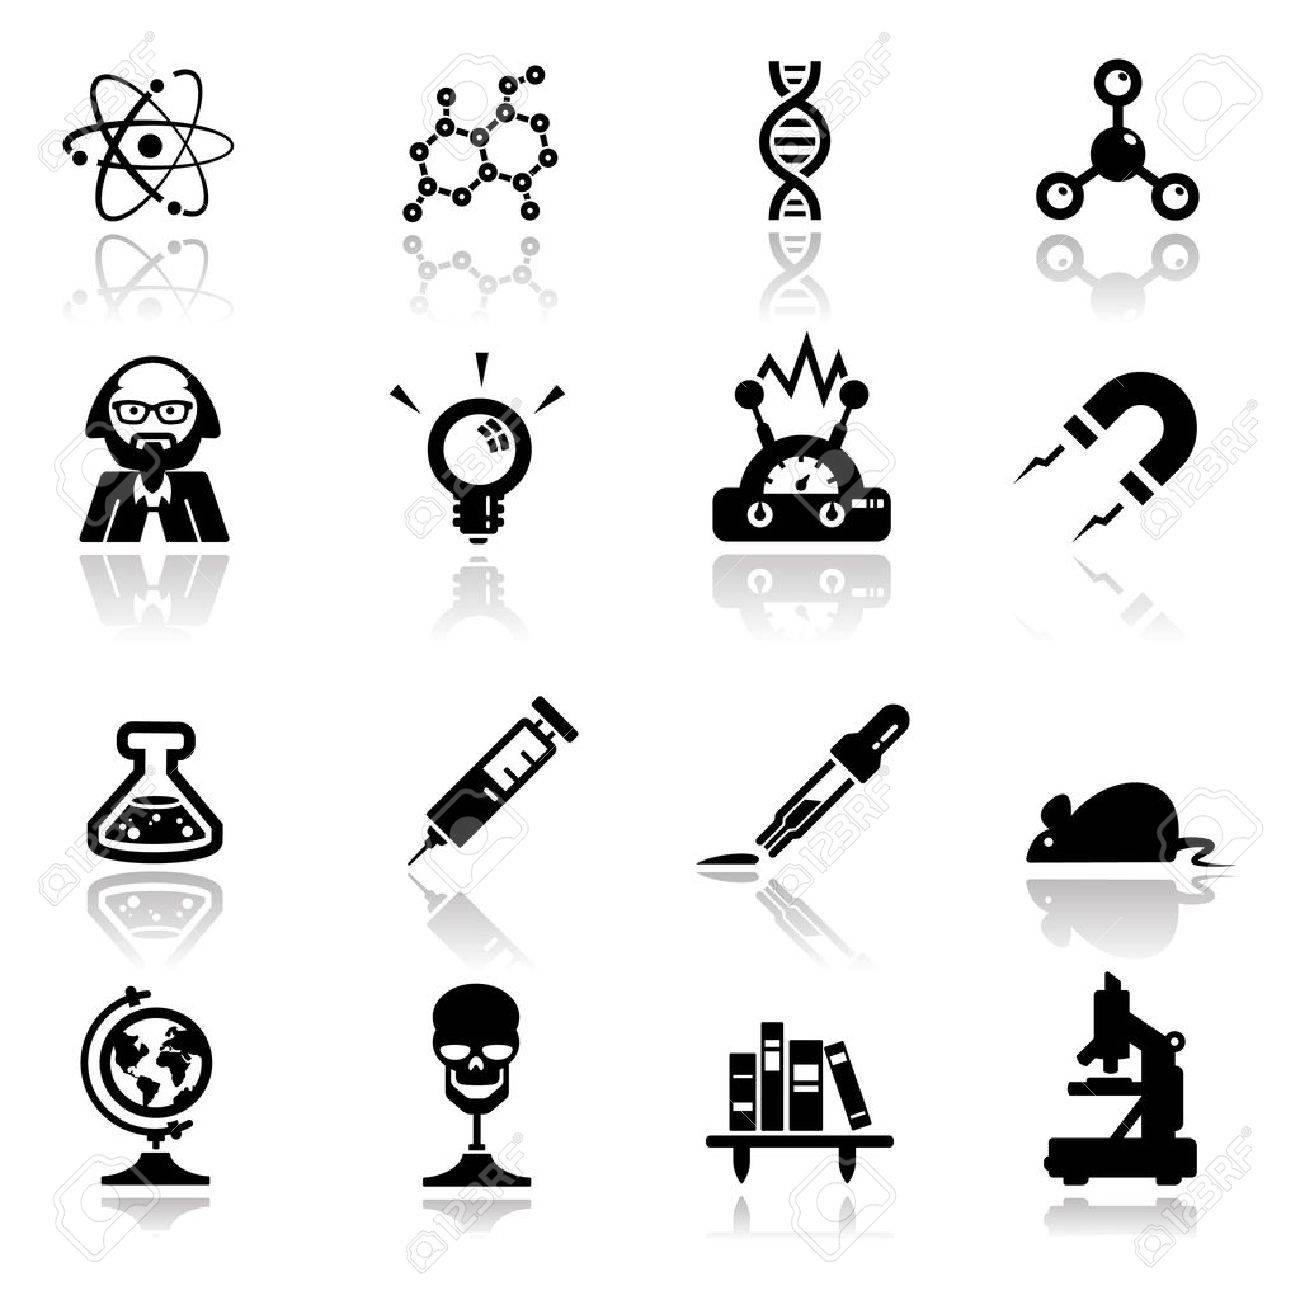 Icons set science and research - 10292219